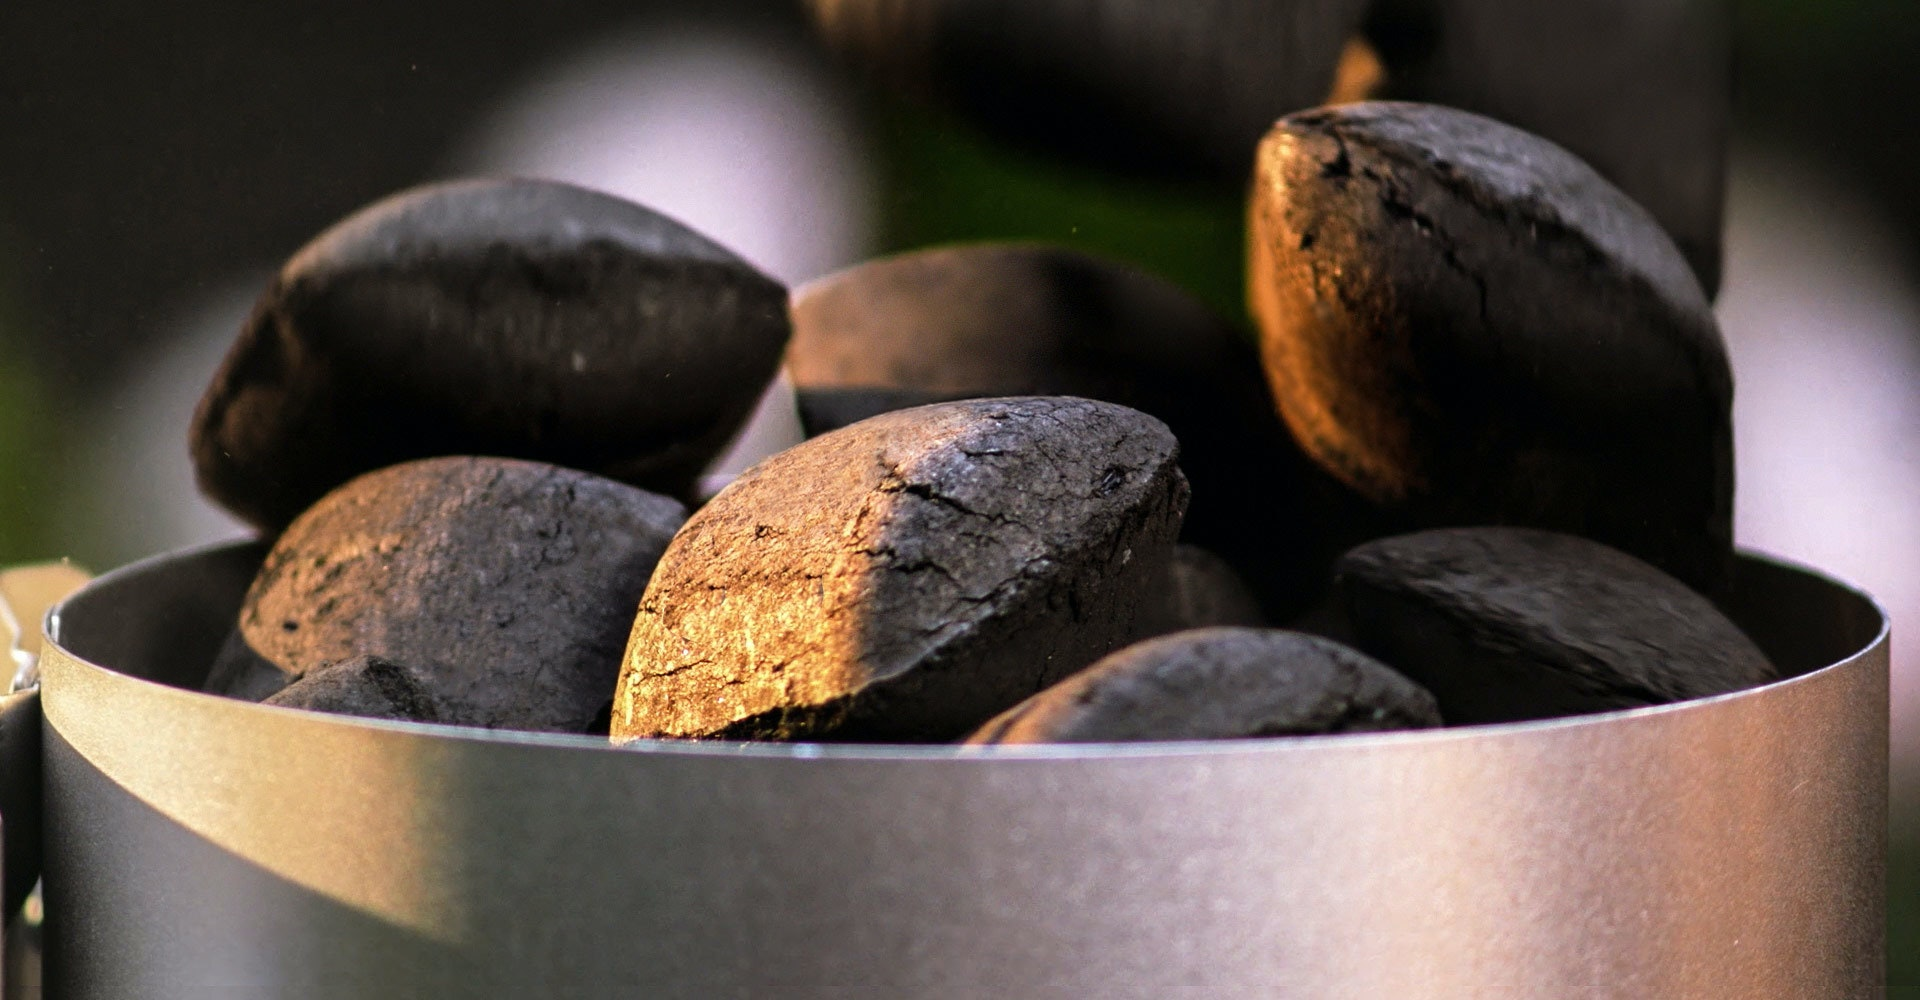 Introducing the NewWeber Briquettes